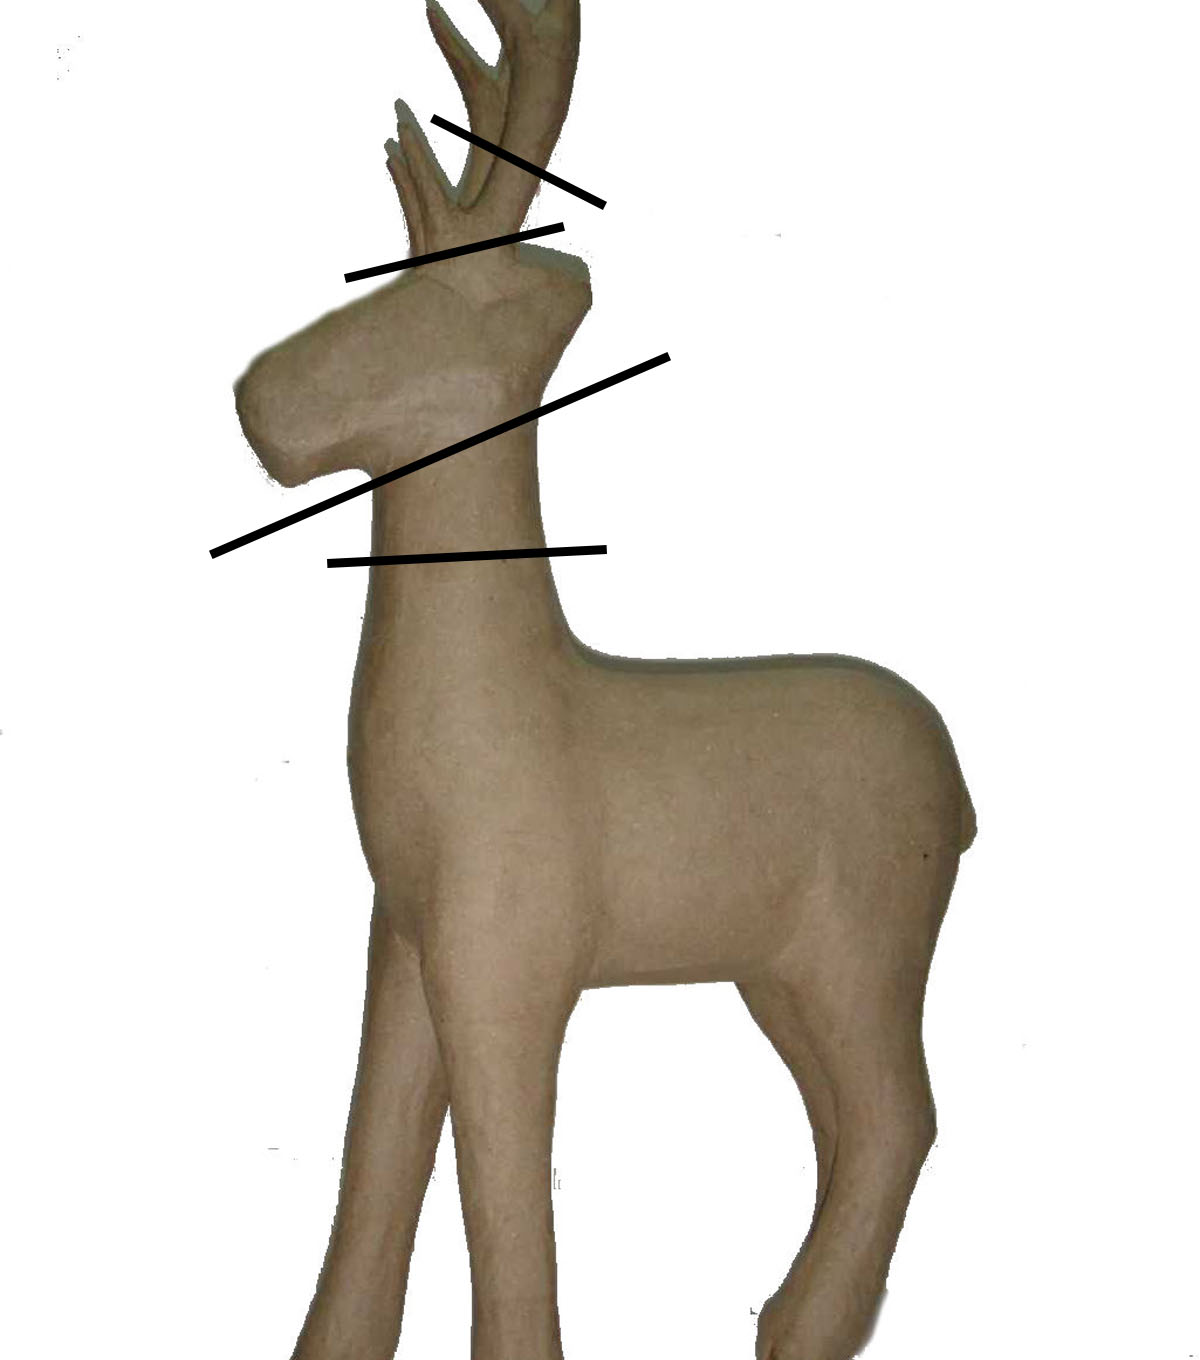 Space Deer Cut Diagram.jpg